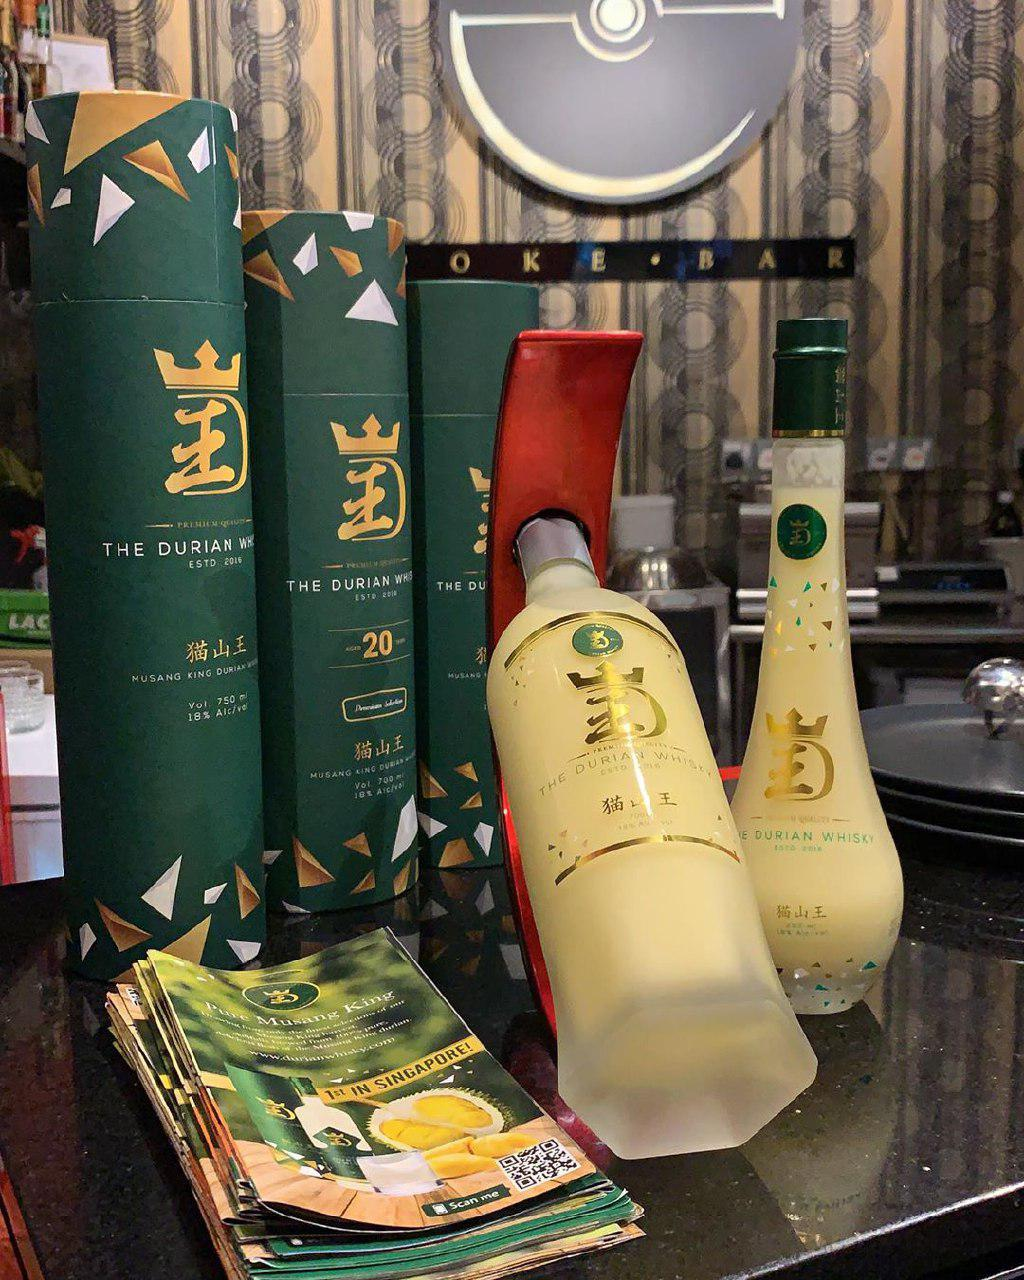 Yummy Food Fair - Durian Whisky